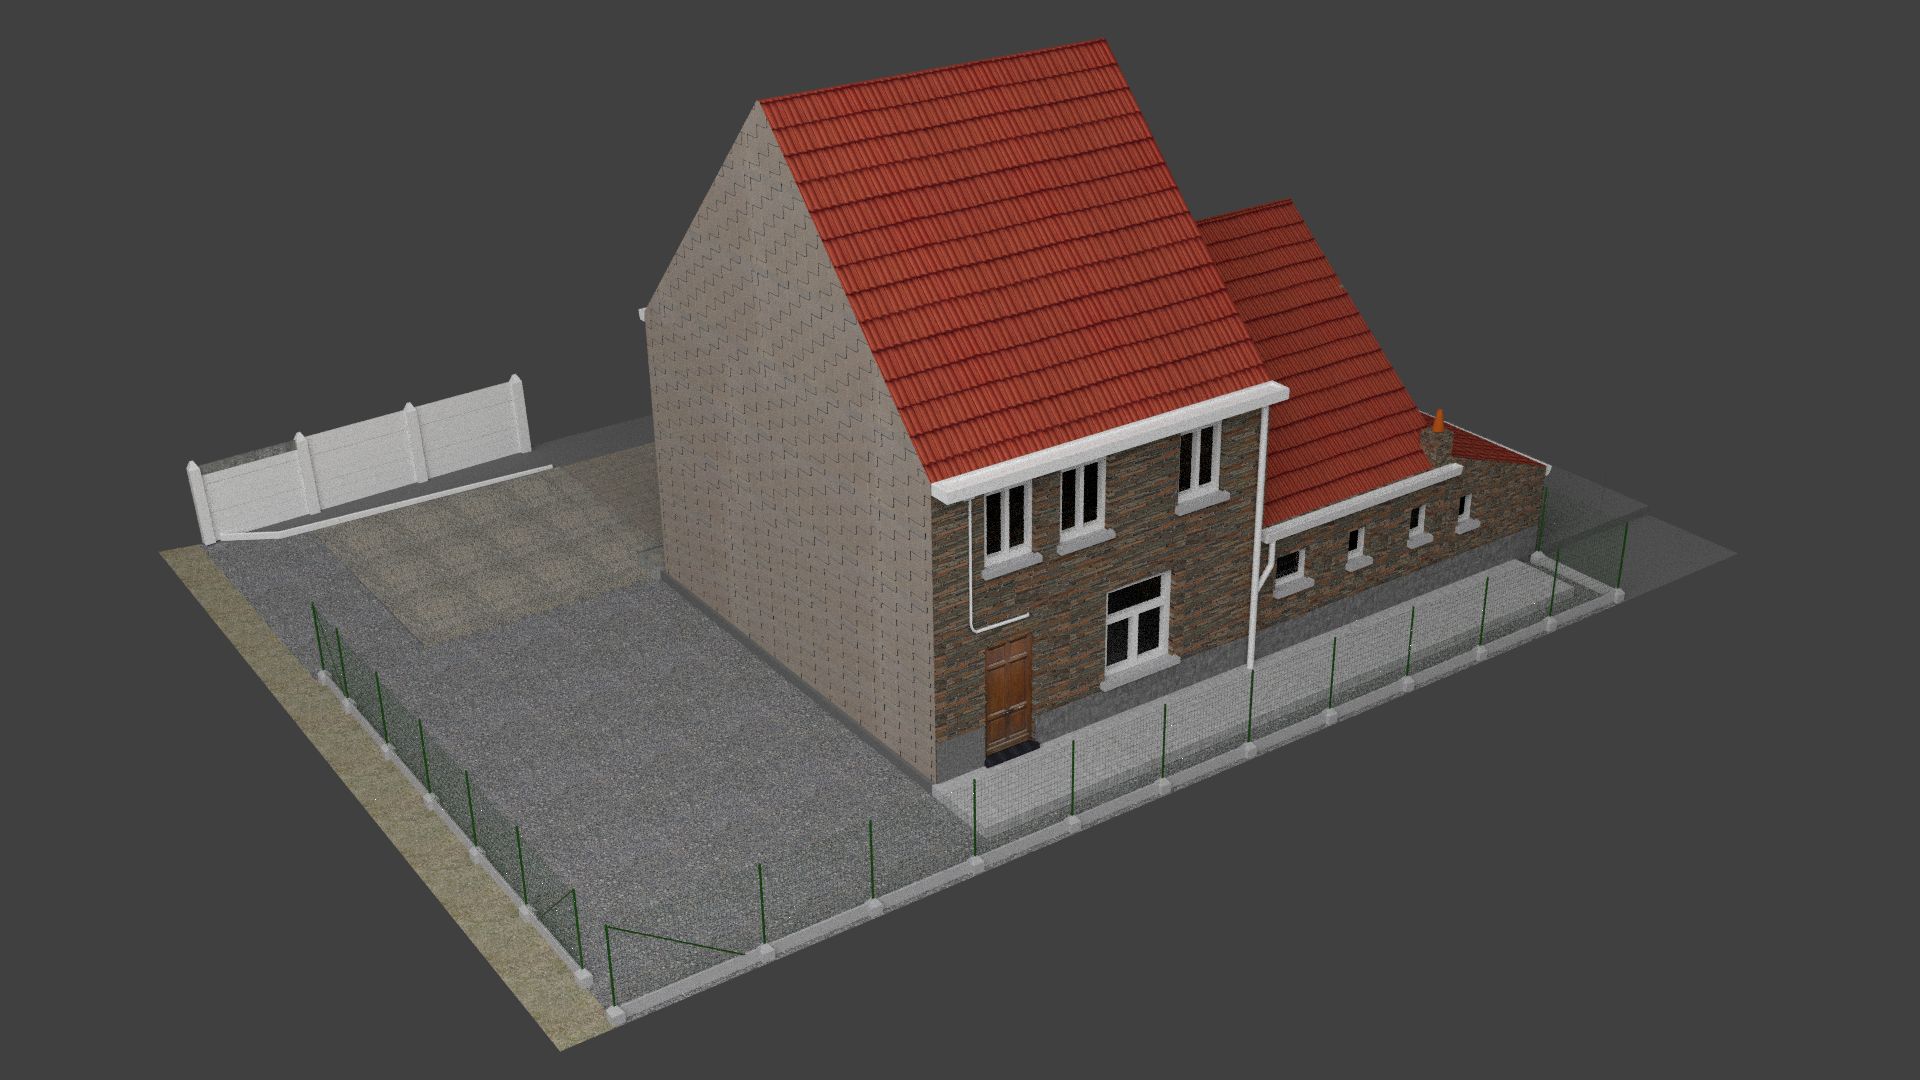 House (ongoing project)